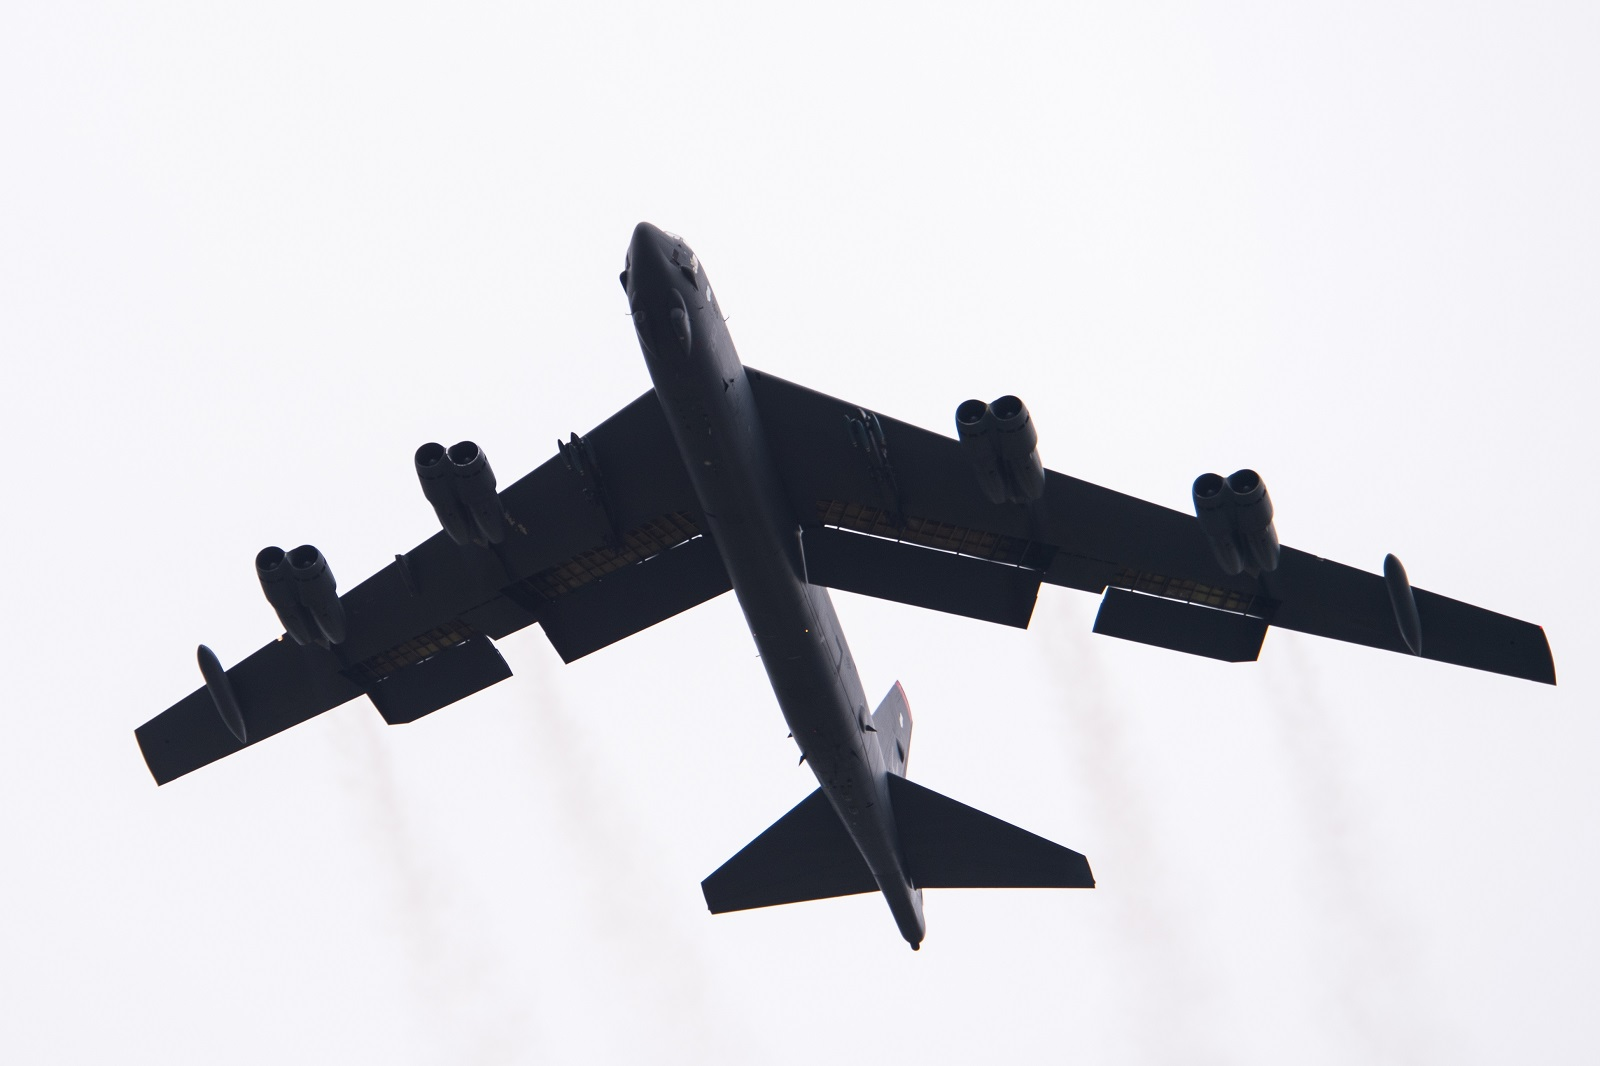 Nuclear Death Wish? Why Did These B-52 Bombers Fly at Wave-Top Heights?